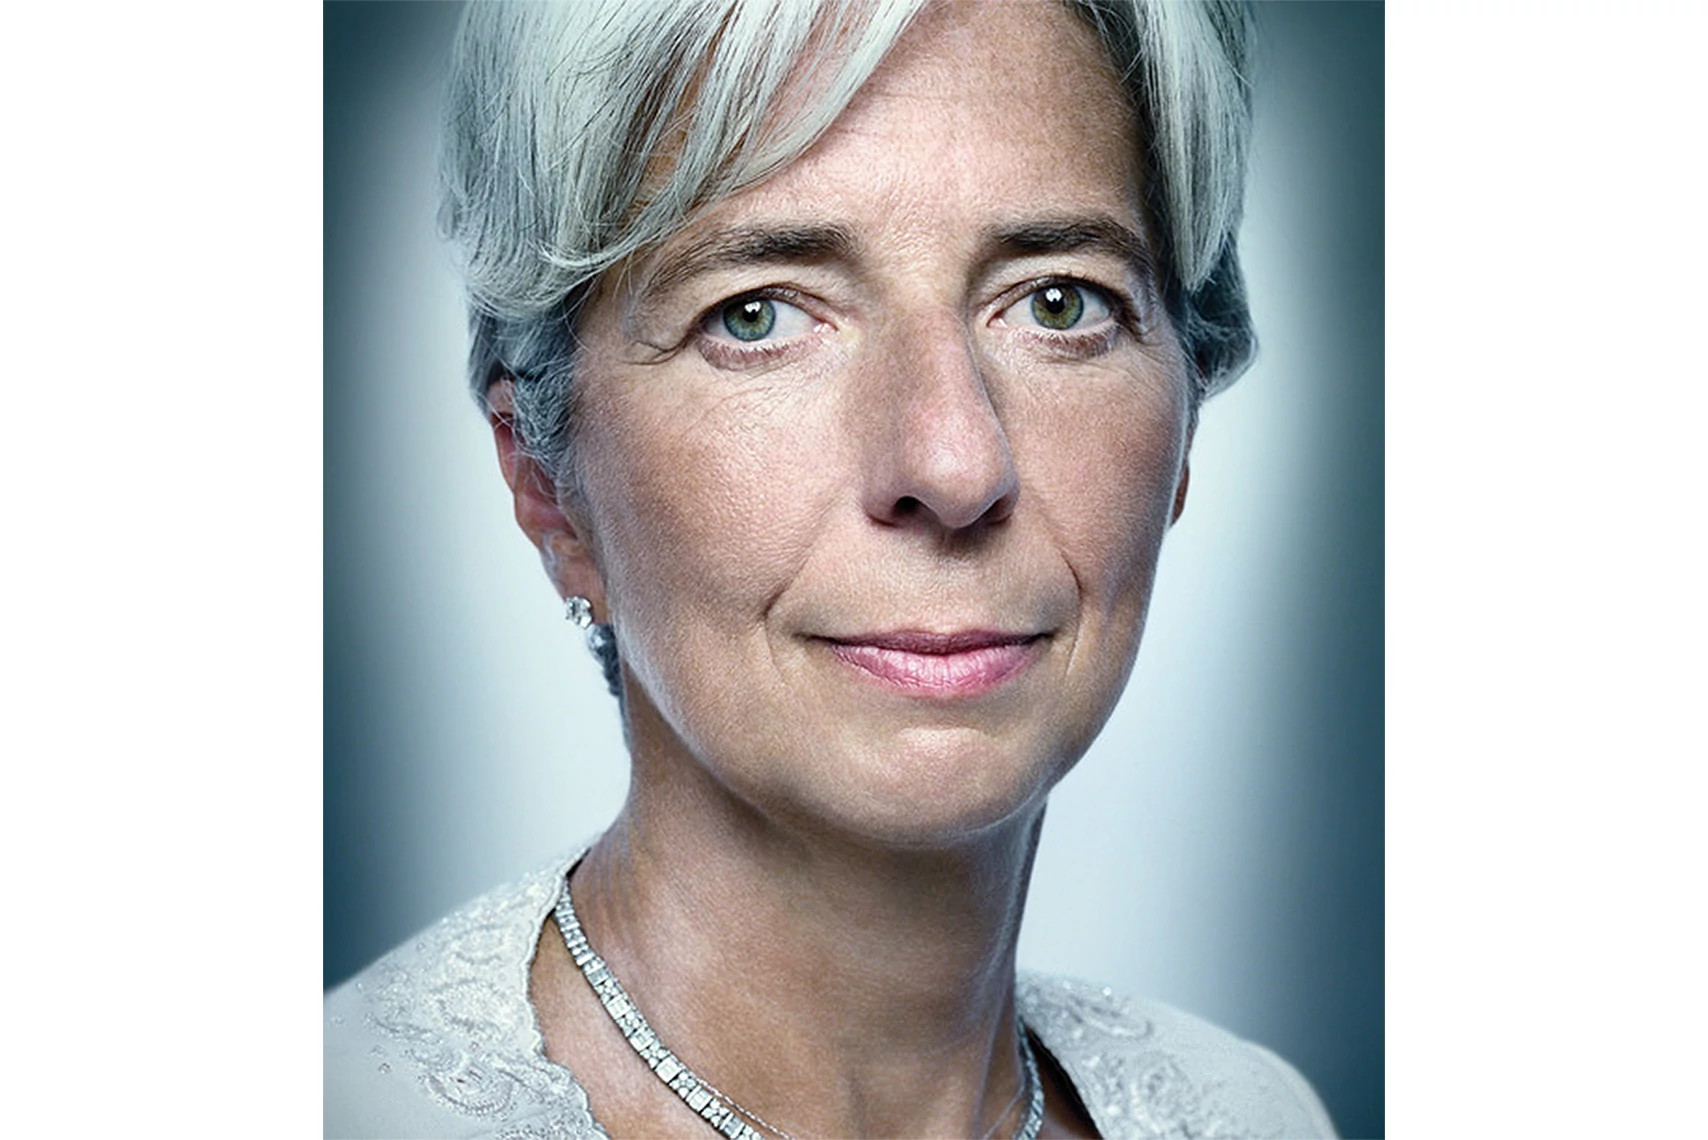 欧洲央行主席Christine Lagarde